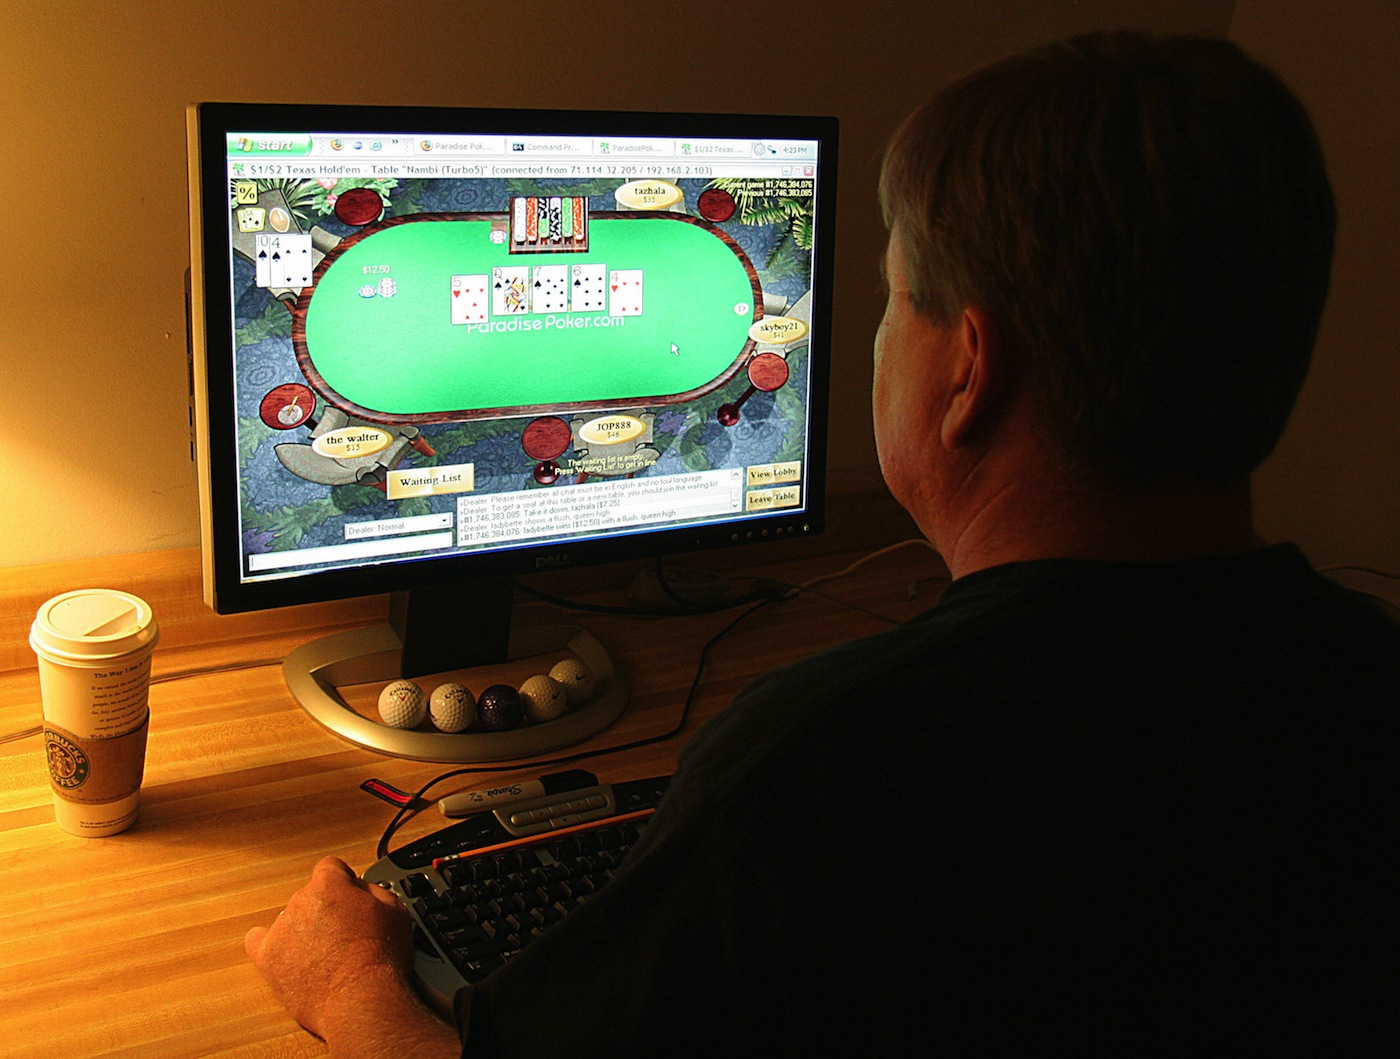 Amaya, not Zynga, buys Bwin.party-owned poker business Ongame for up to $32.2m